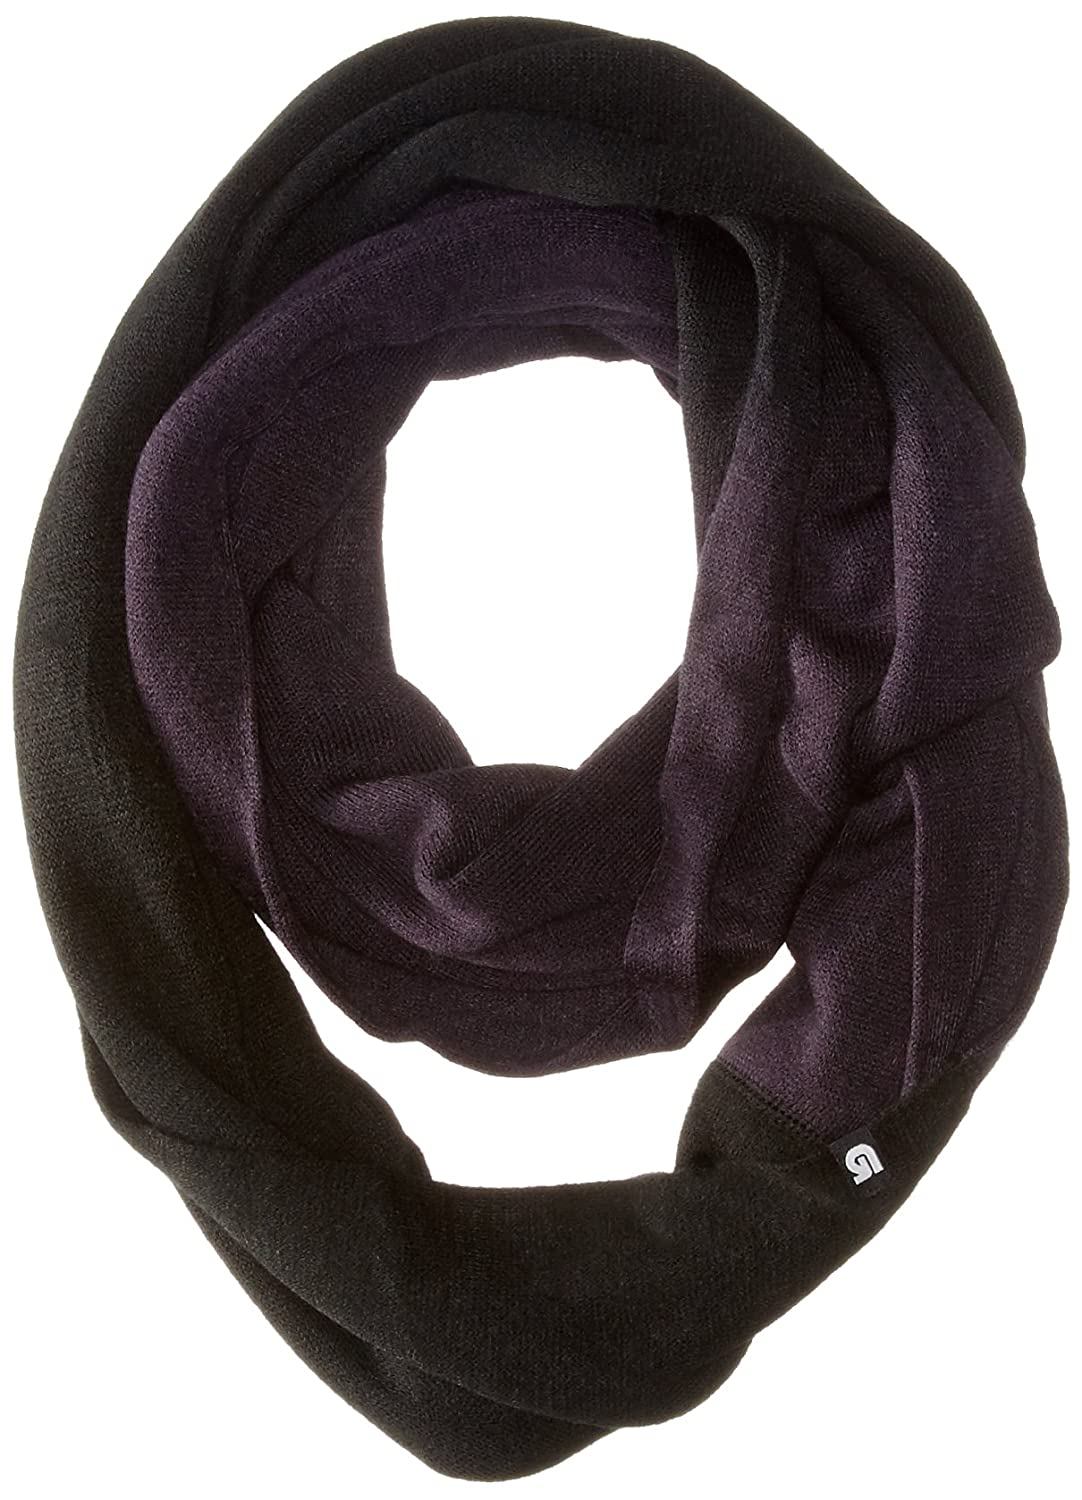 6327a22dba5 Amazon.com  Burton Women s Crush Scarf